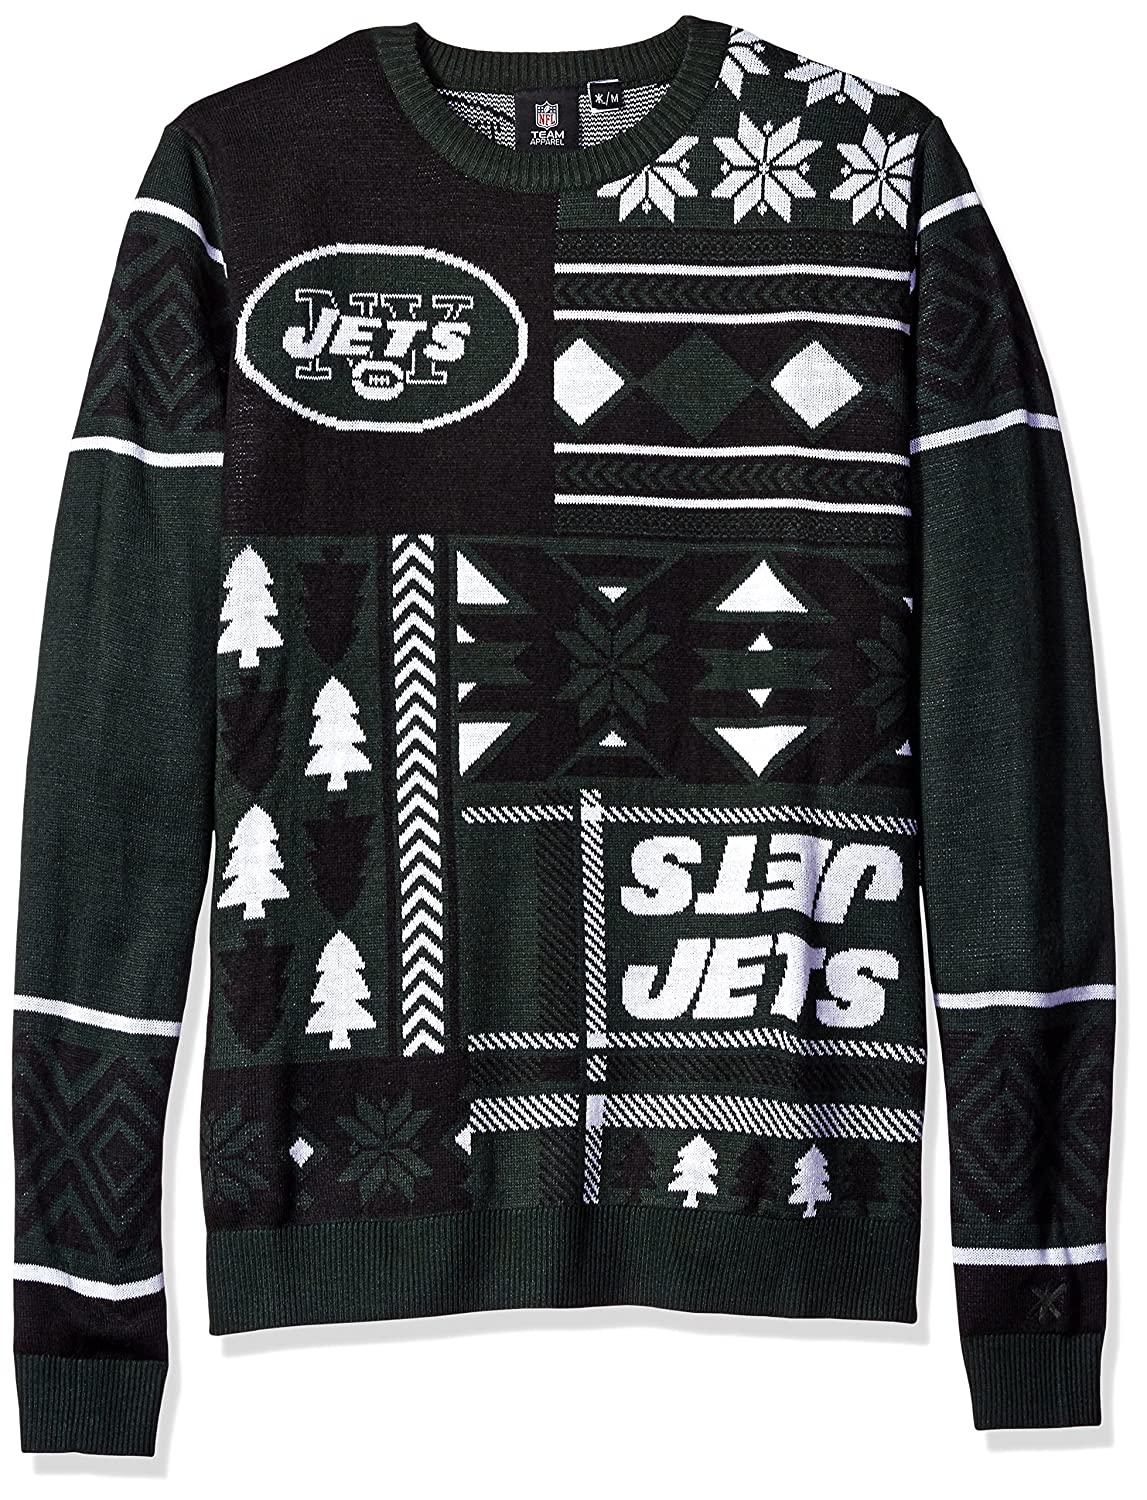 NFL Patches UGLY sweater- Pickチーム L グリーン   B012ELNQC6